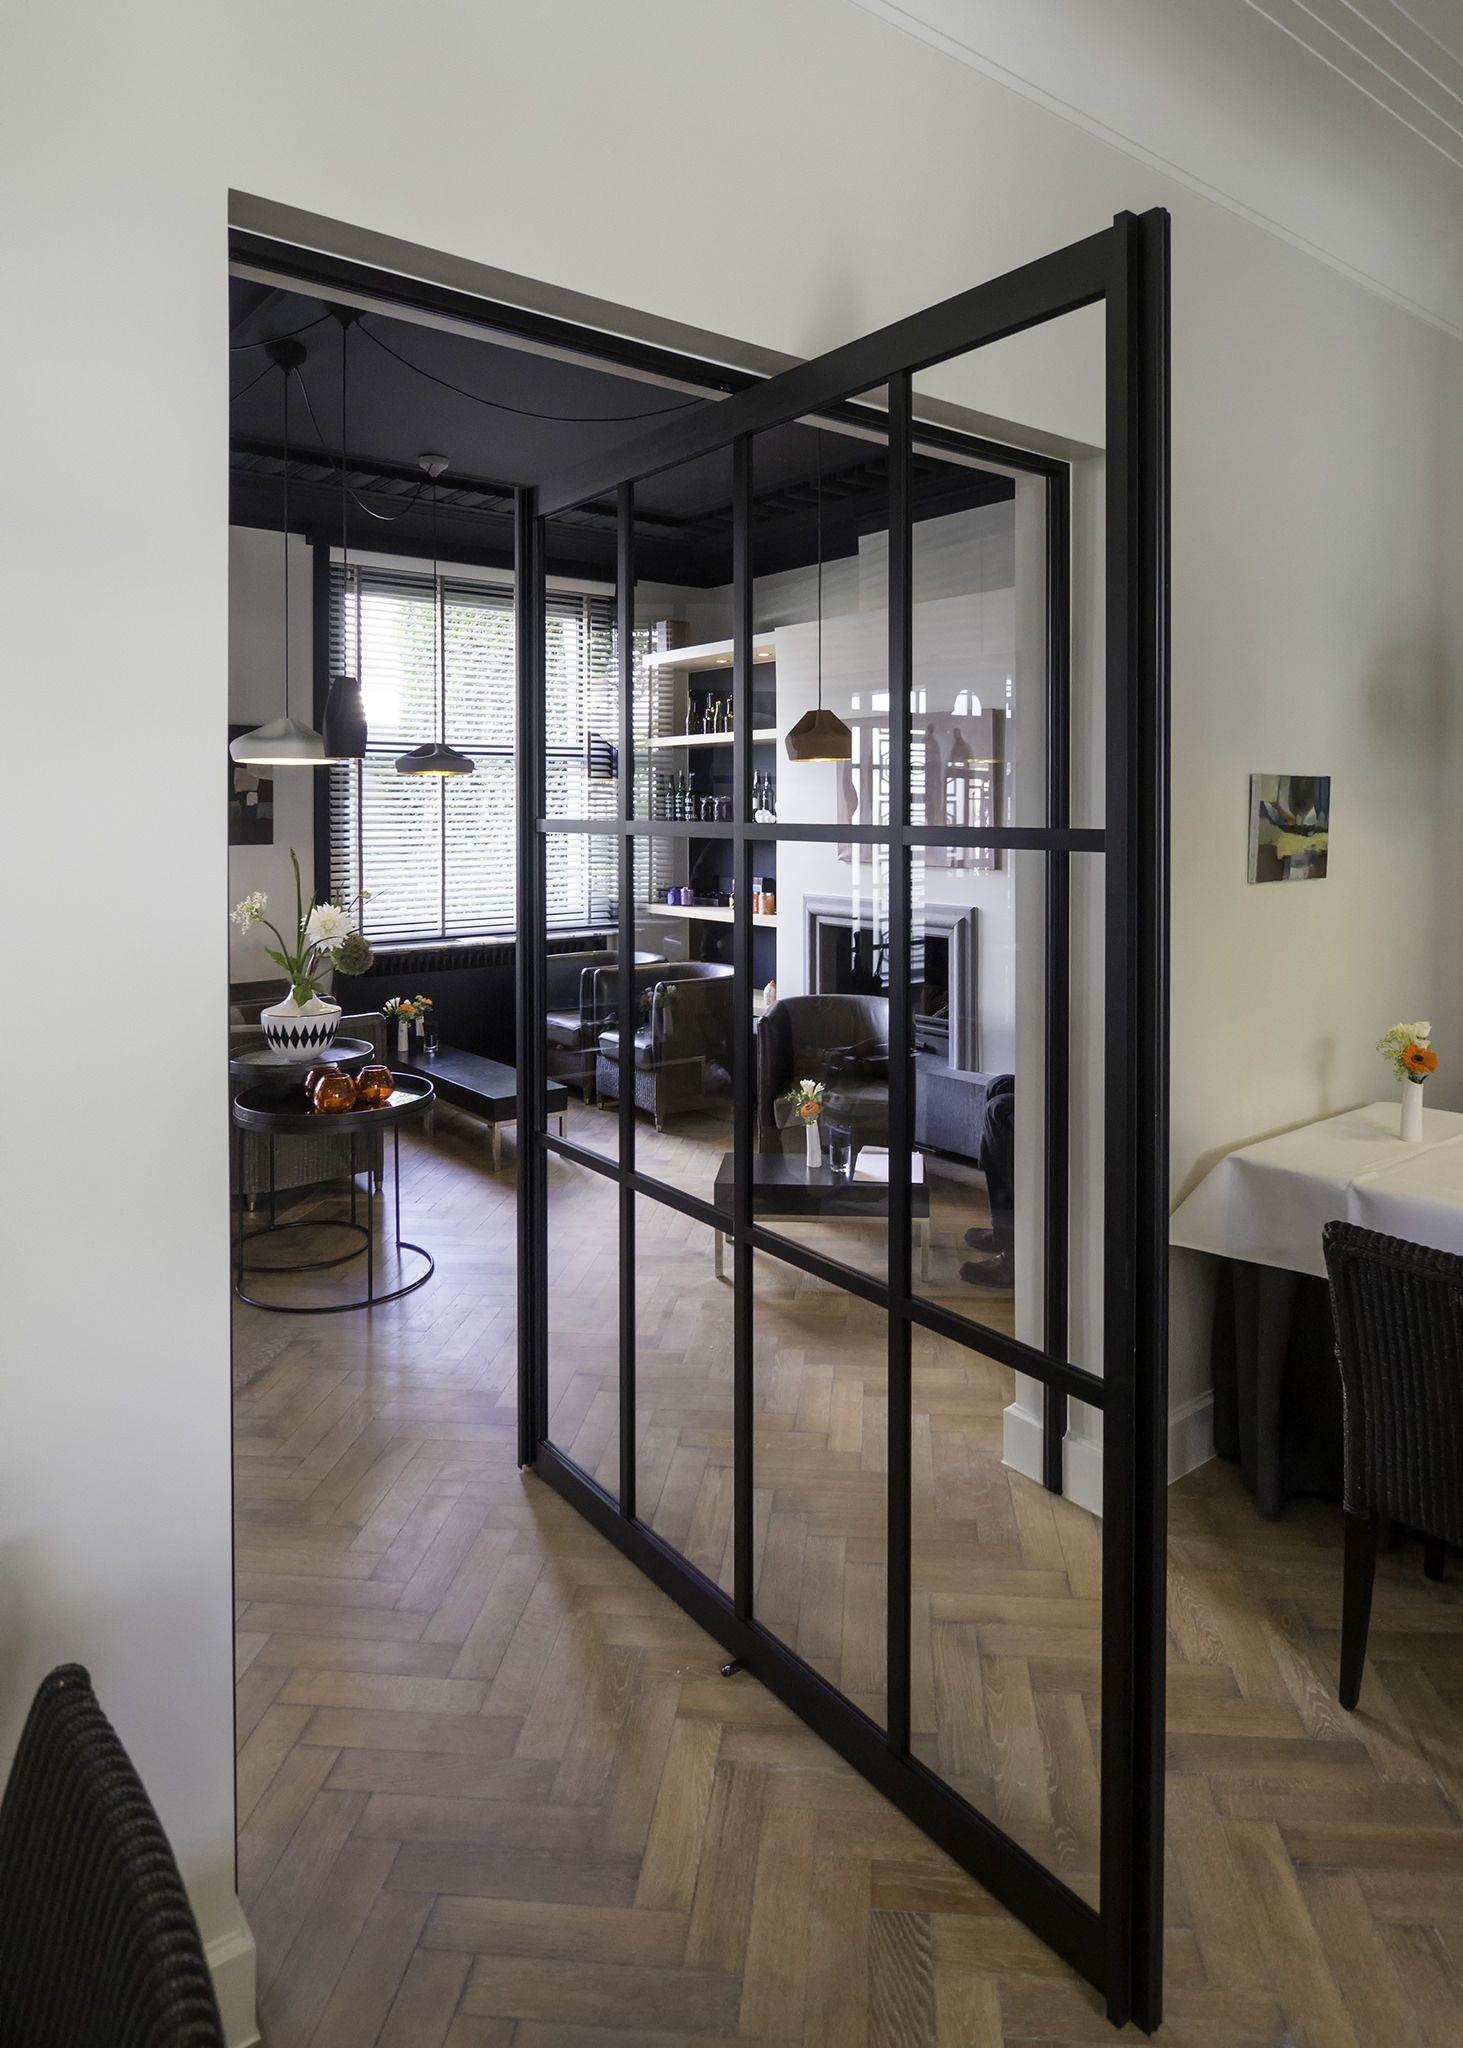 porte vitr e sur pivot style atelier de anyway doors portes pivotantes portes int rieures. Black Bedroom Furniture Sets. Home Design Ideas